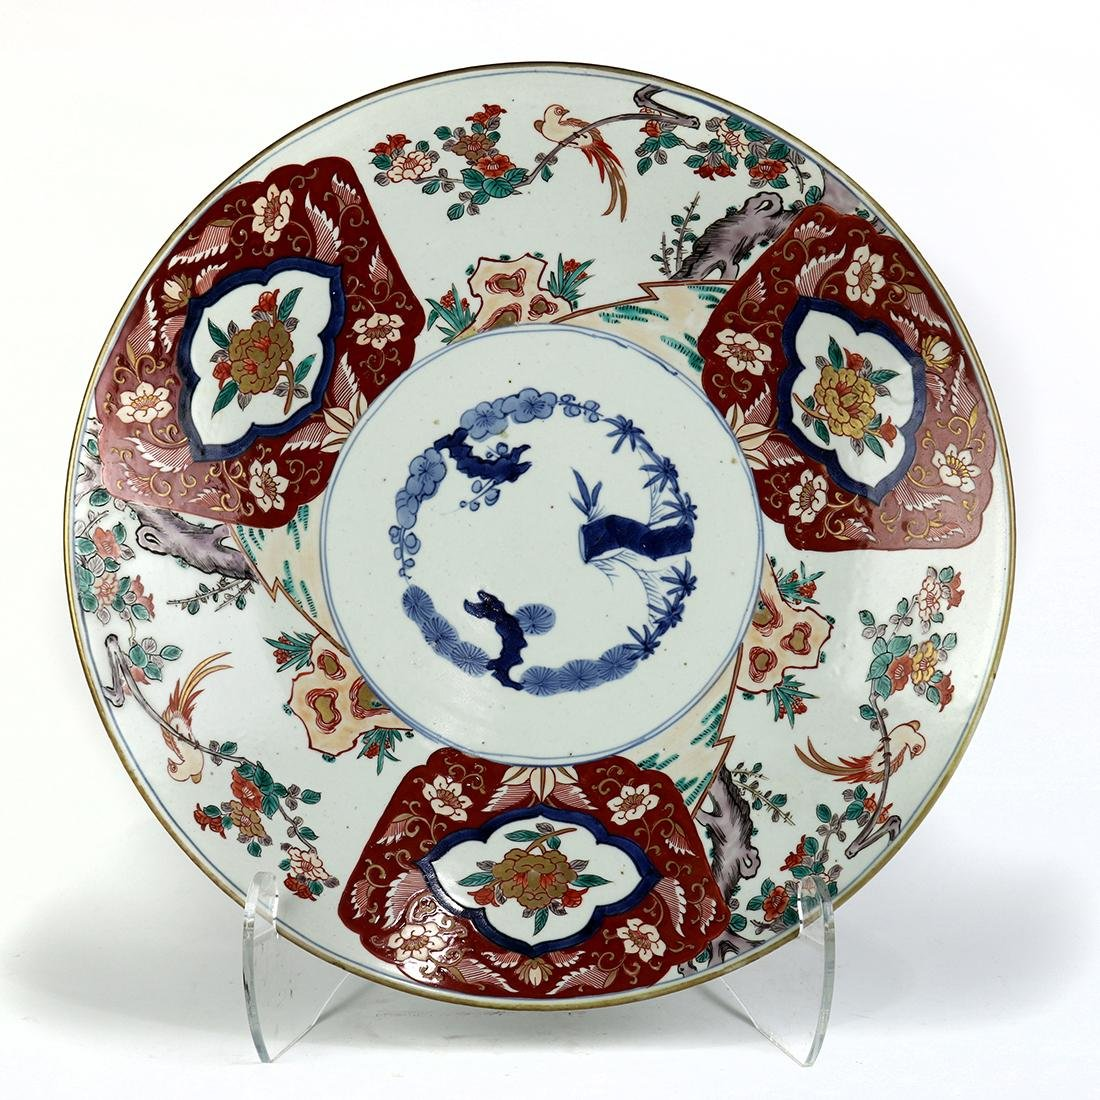 Japanese Imari Porcelain Charger, Three Friends of